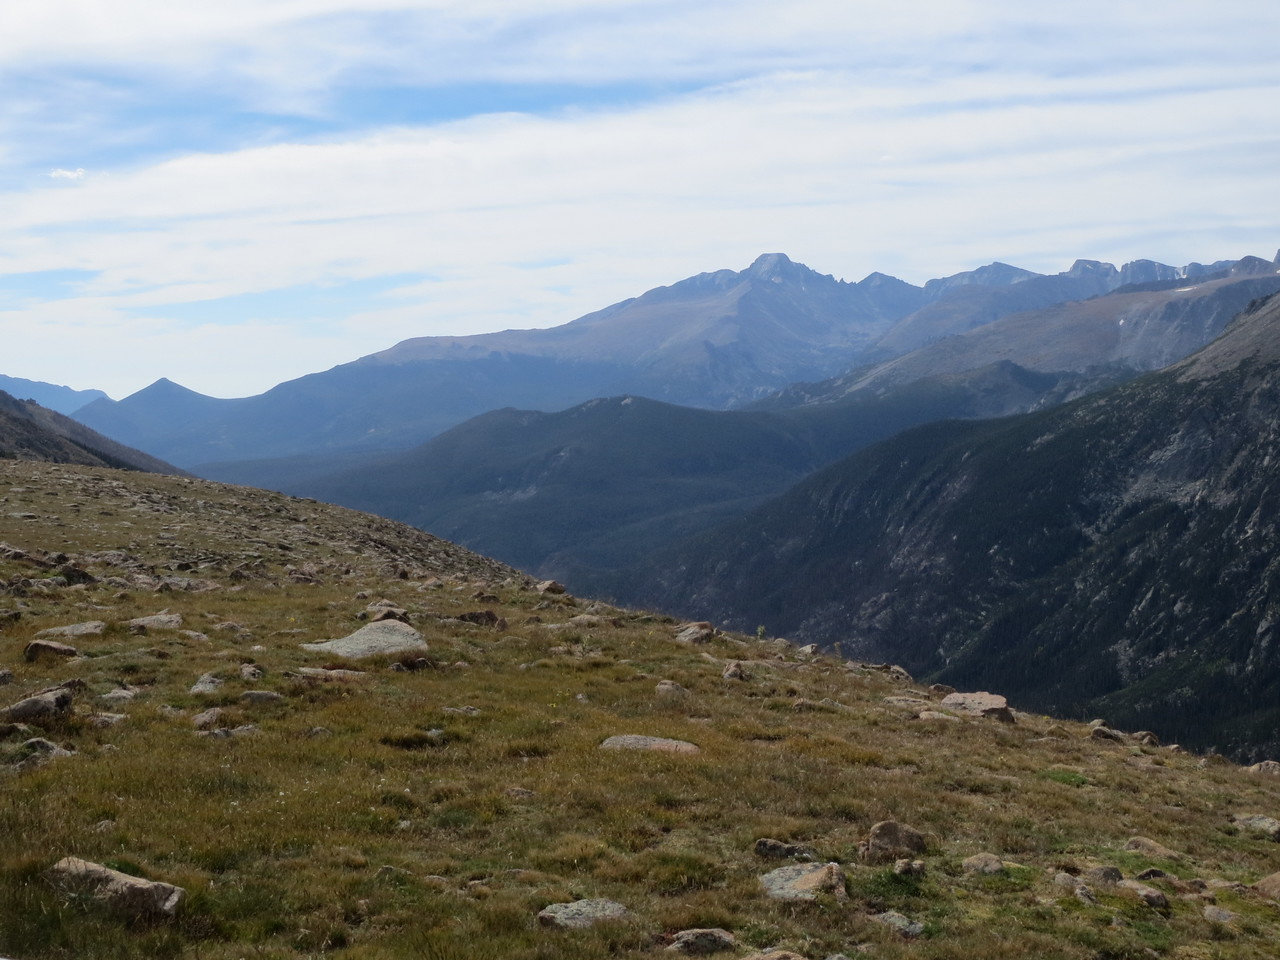 Day 3 (363 miles): Trail Ridge Rd, RMNP.  12,000 feet